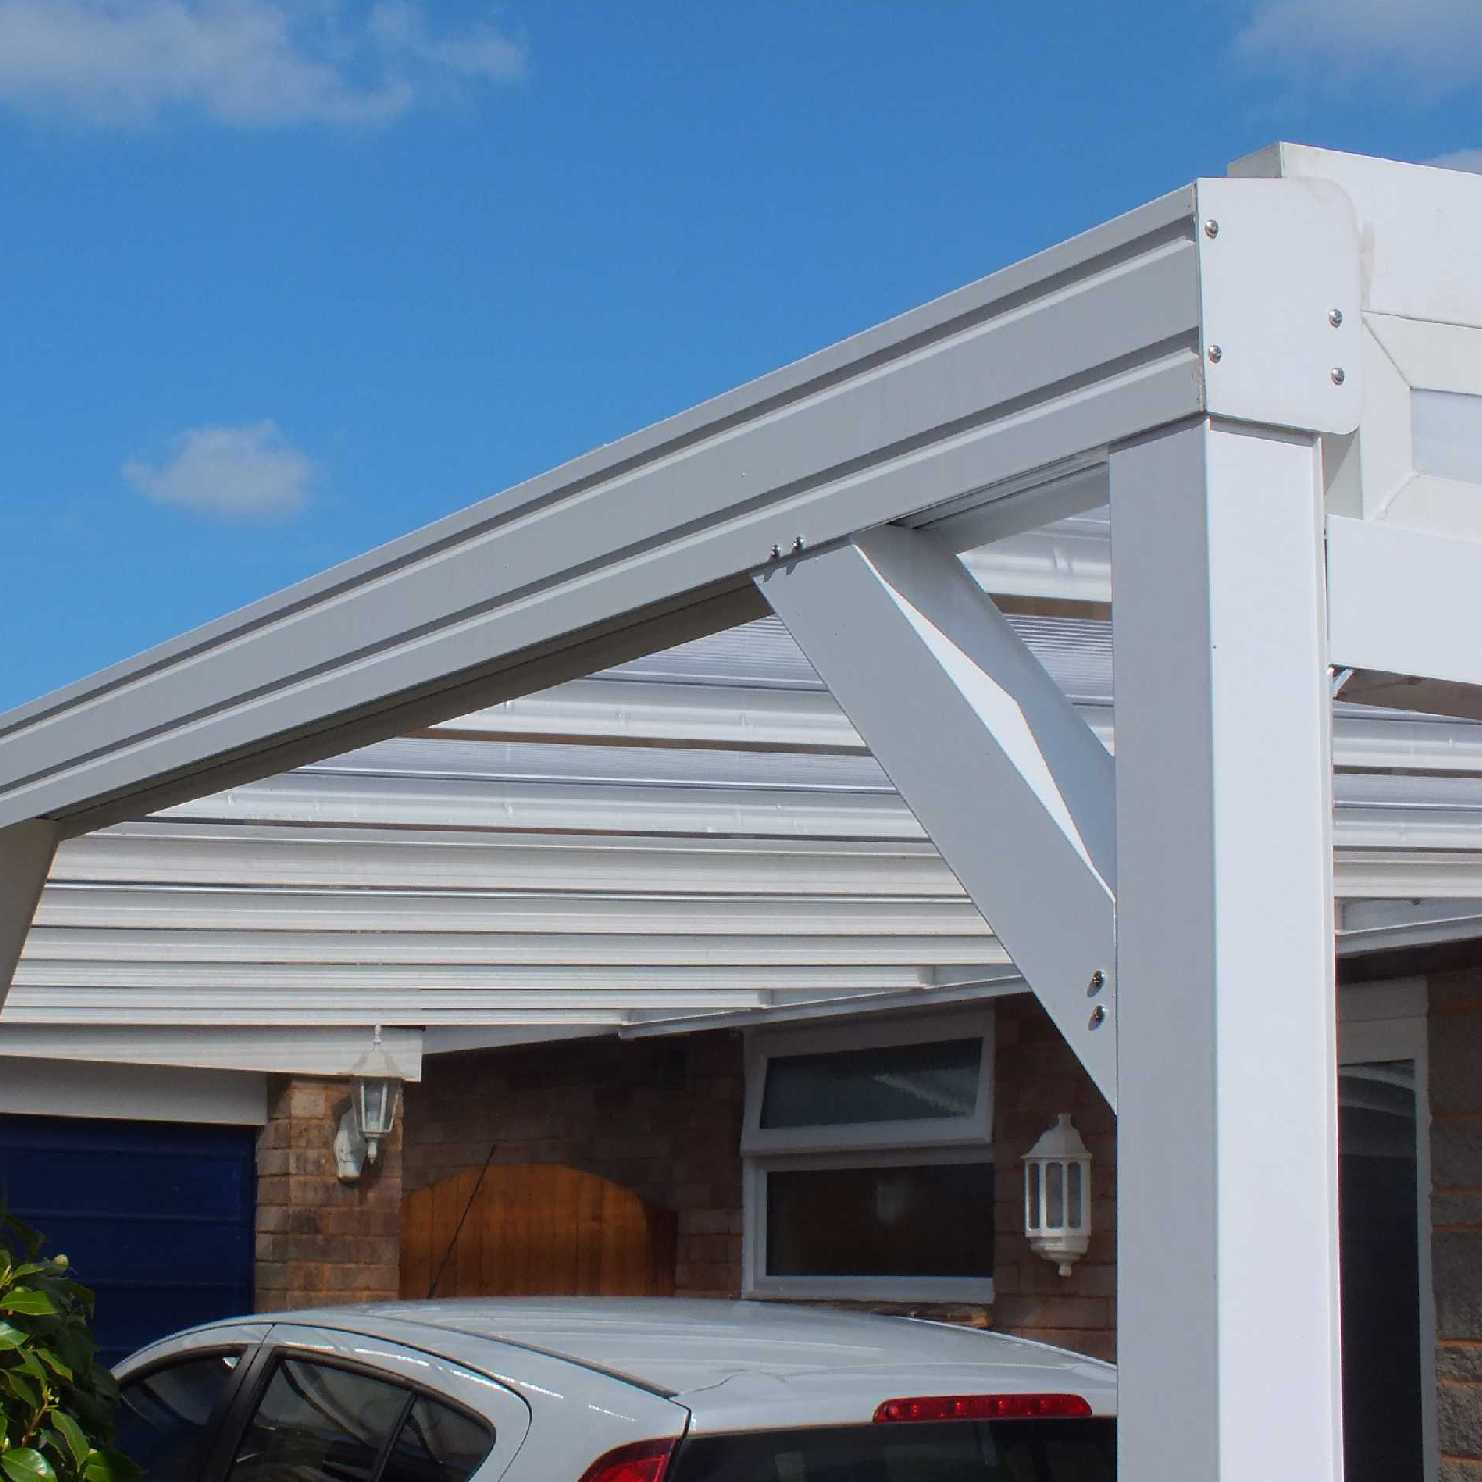 Buy Omega Smart White Lean-To Canopy with 16mm Polycarbonate Glazing - 6.3m (W) x 2.5m (P), (4) Supporting Posts online today